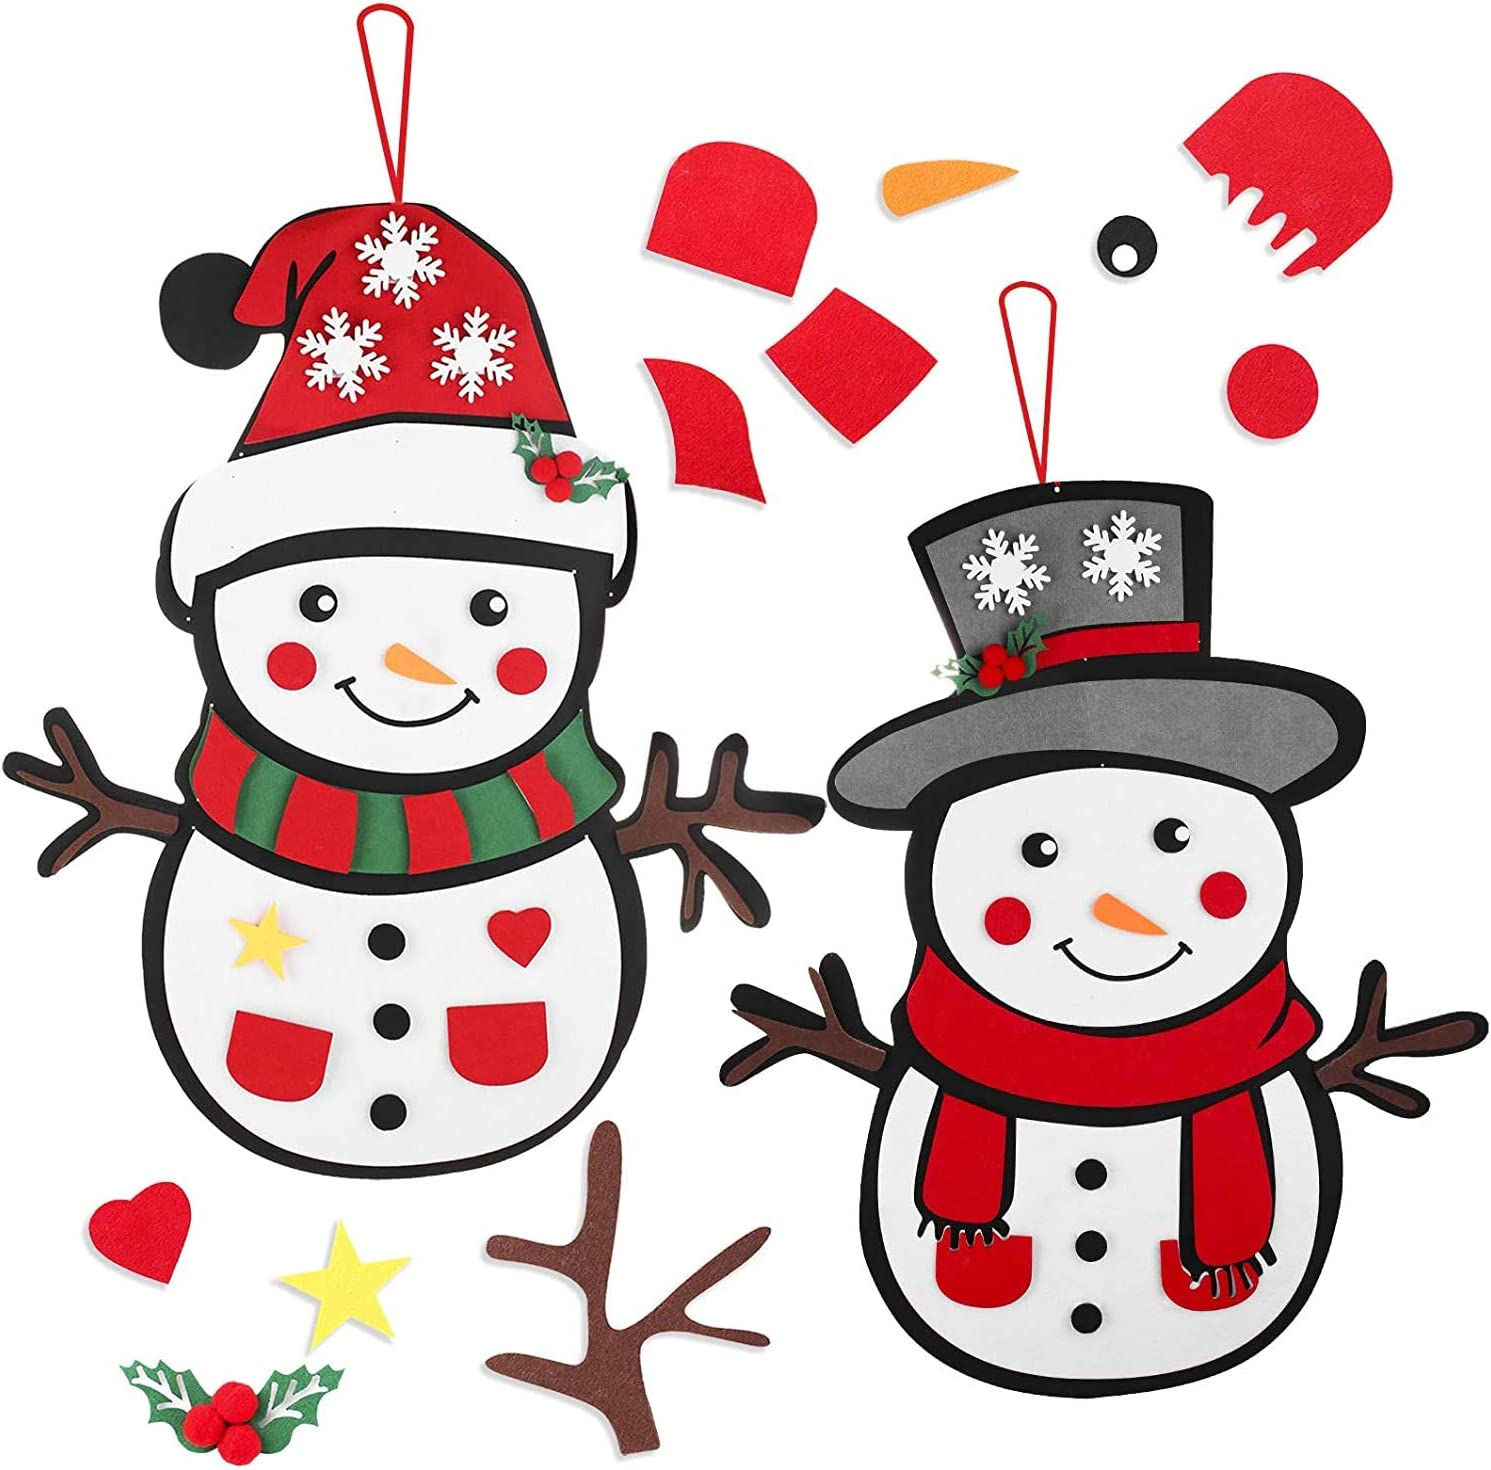 2 Pack DIY Felt Snowman Games for Craft Christmas Kit Credence Special price for a limited time Kids Set